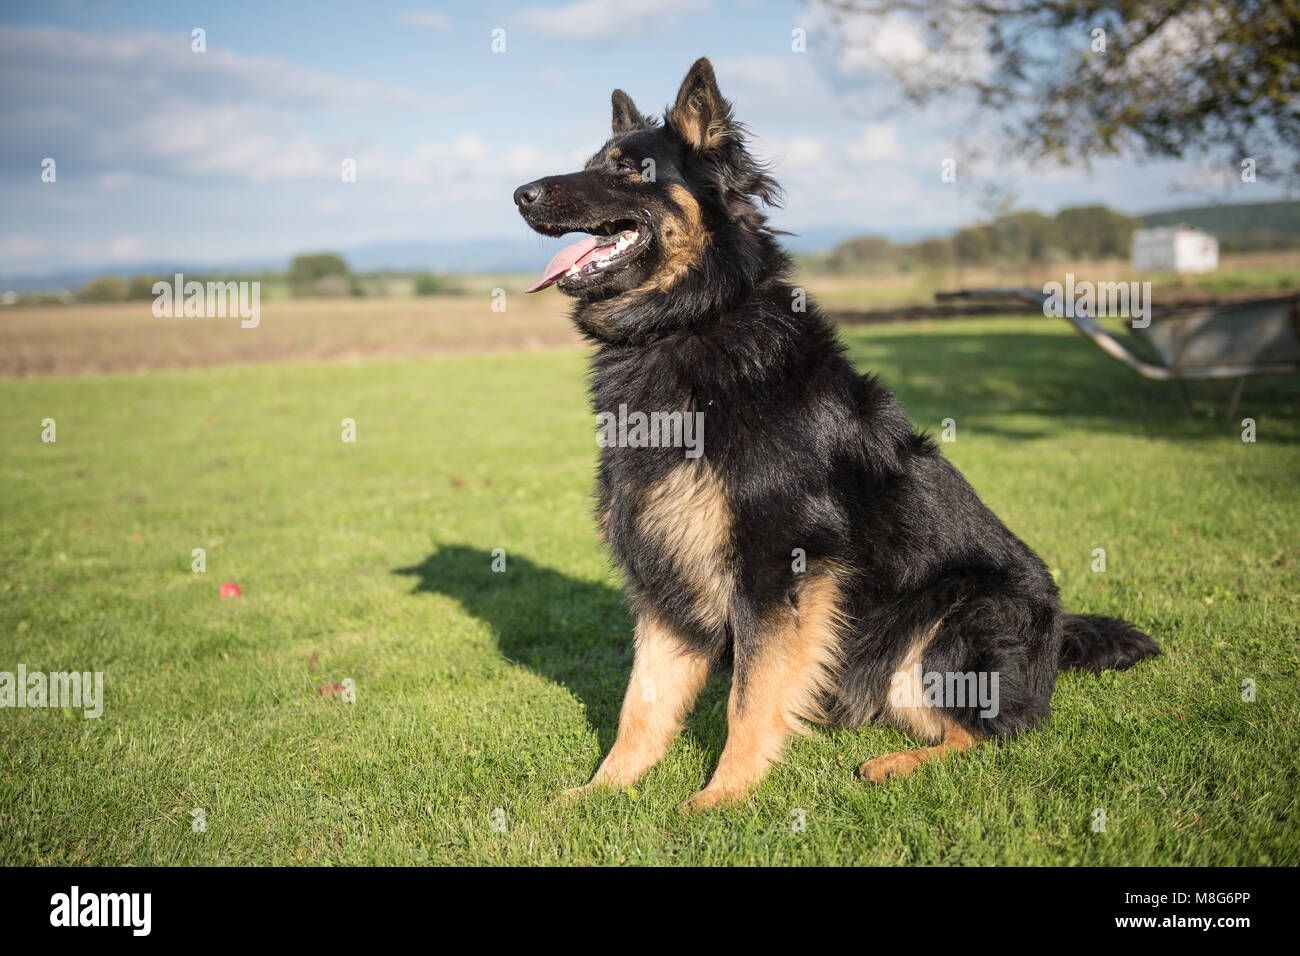 Young Bohemian Shepherd sits in a garden during a sunny day - Stock Image